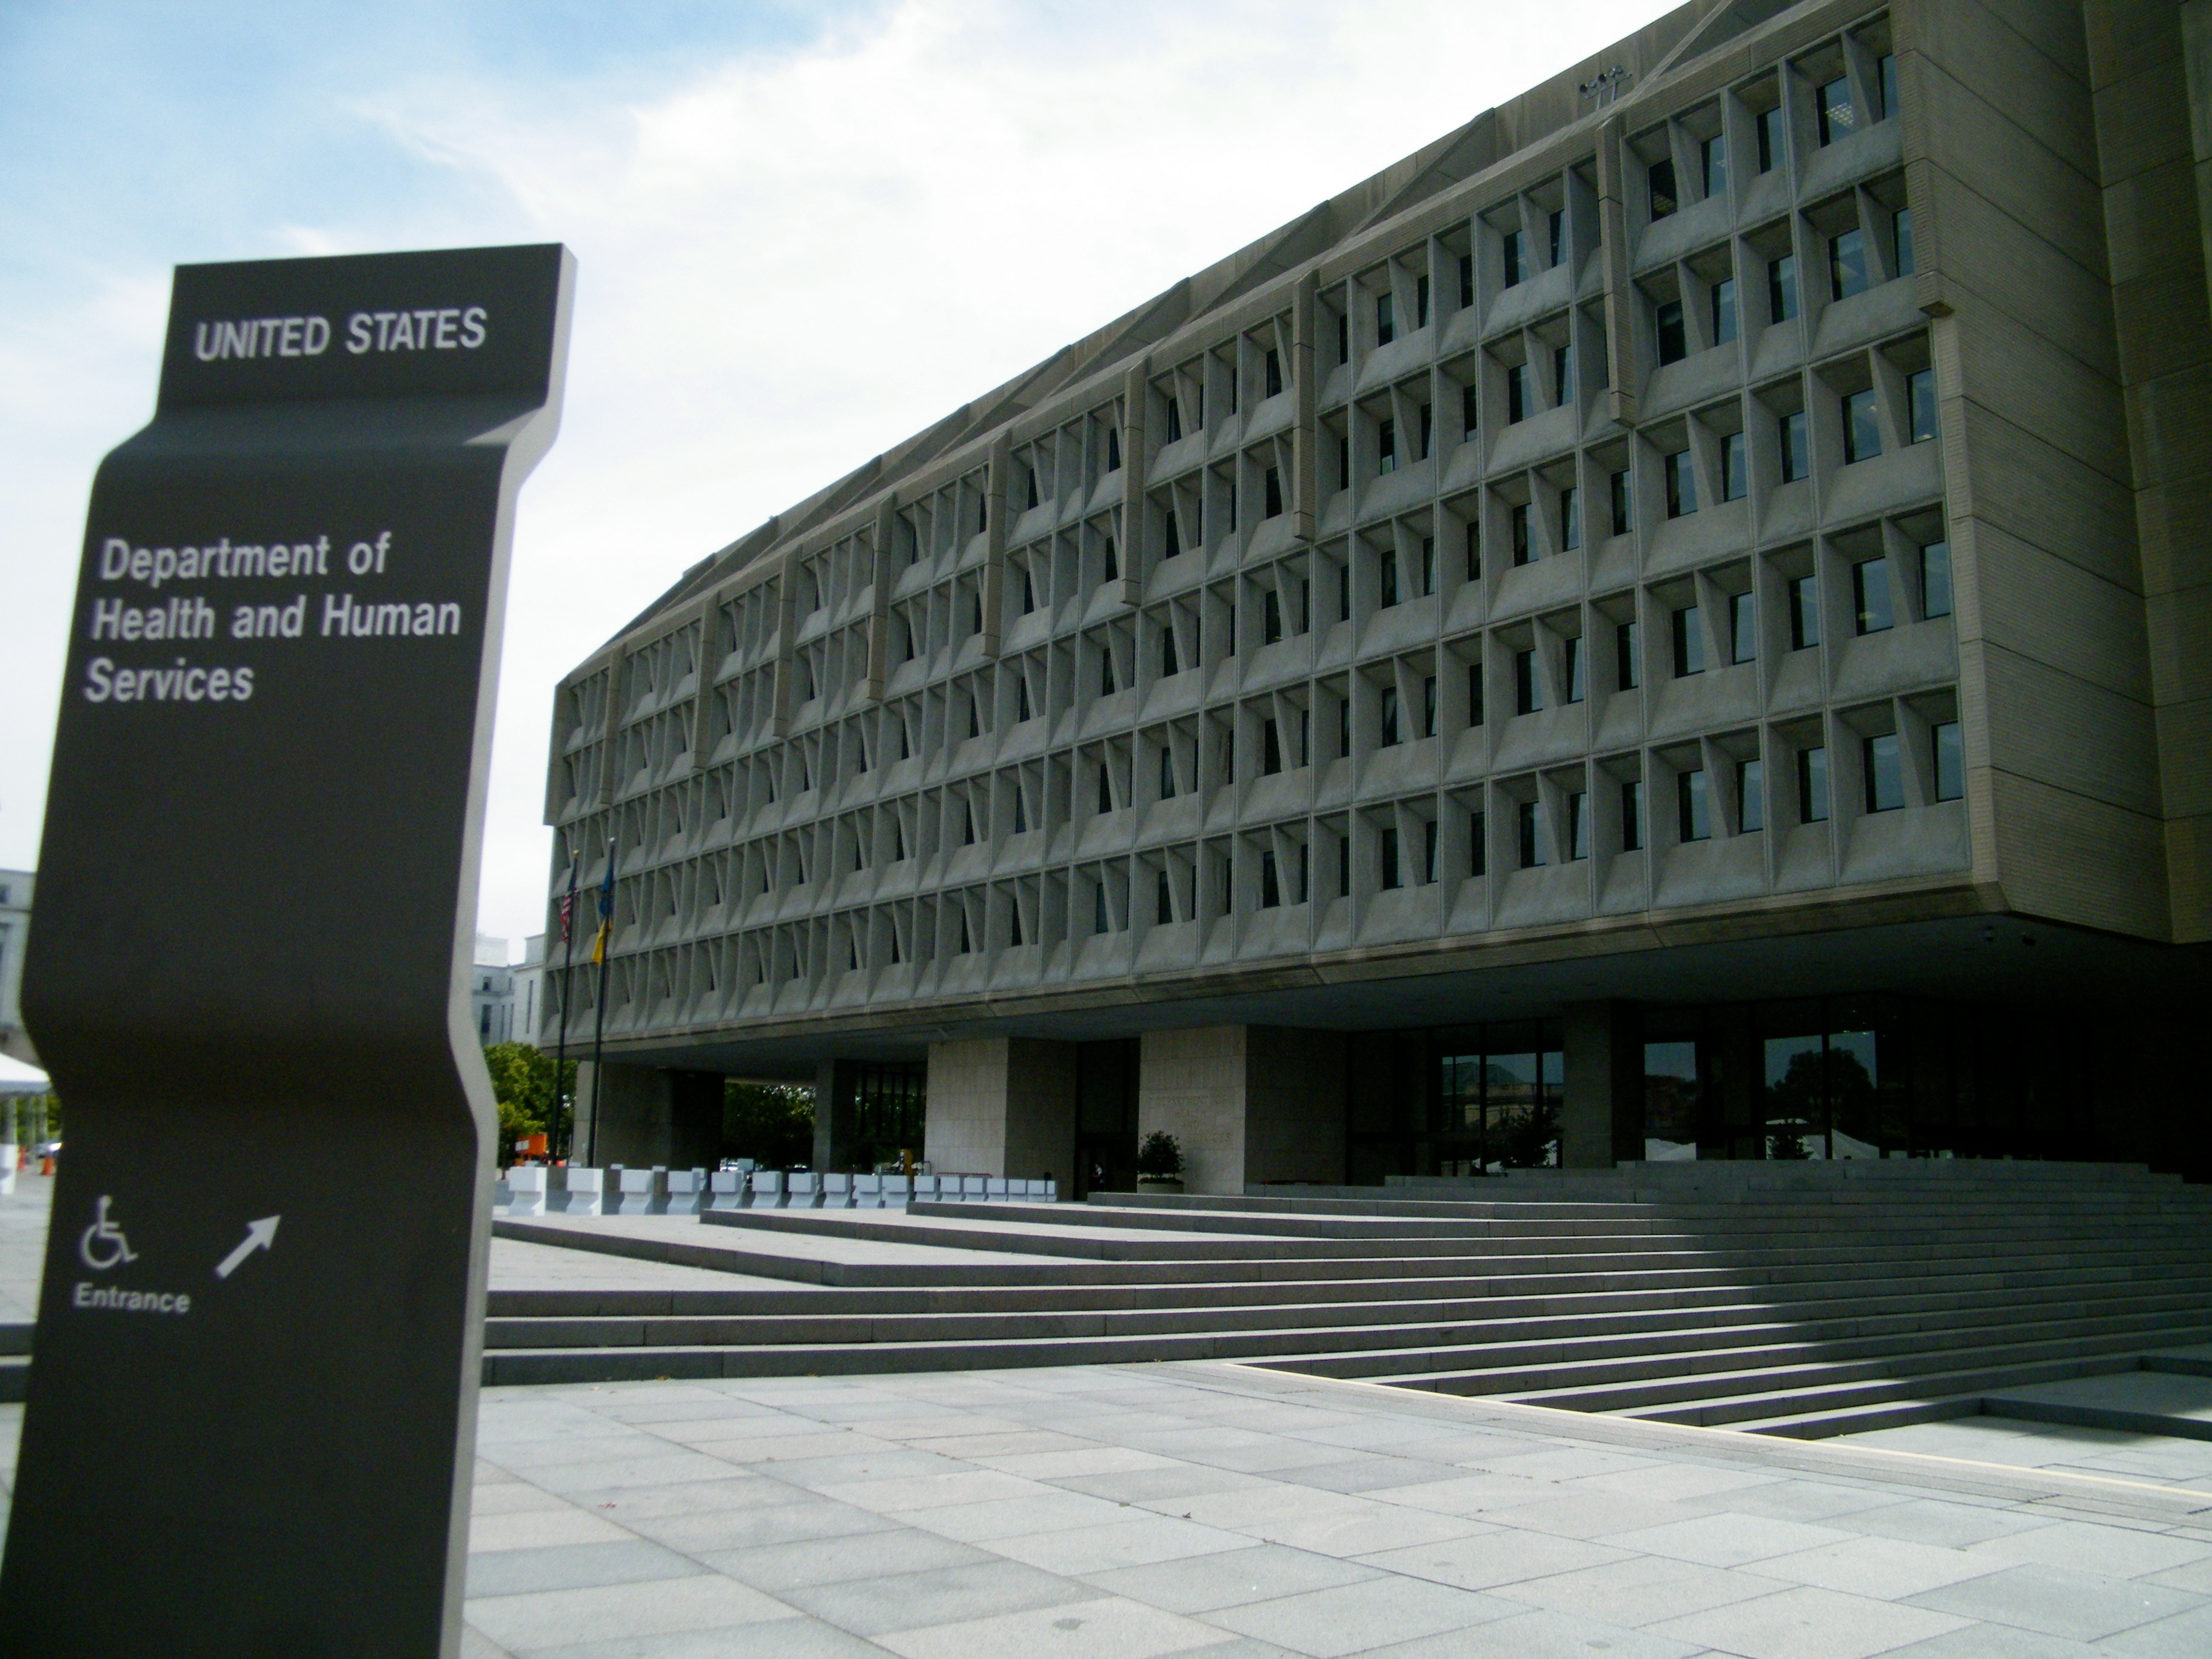 Department of Health & Human Services, photo by Sarah Stierch (CC BY 4.0) Wikipedia Commons